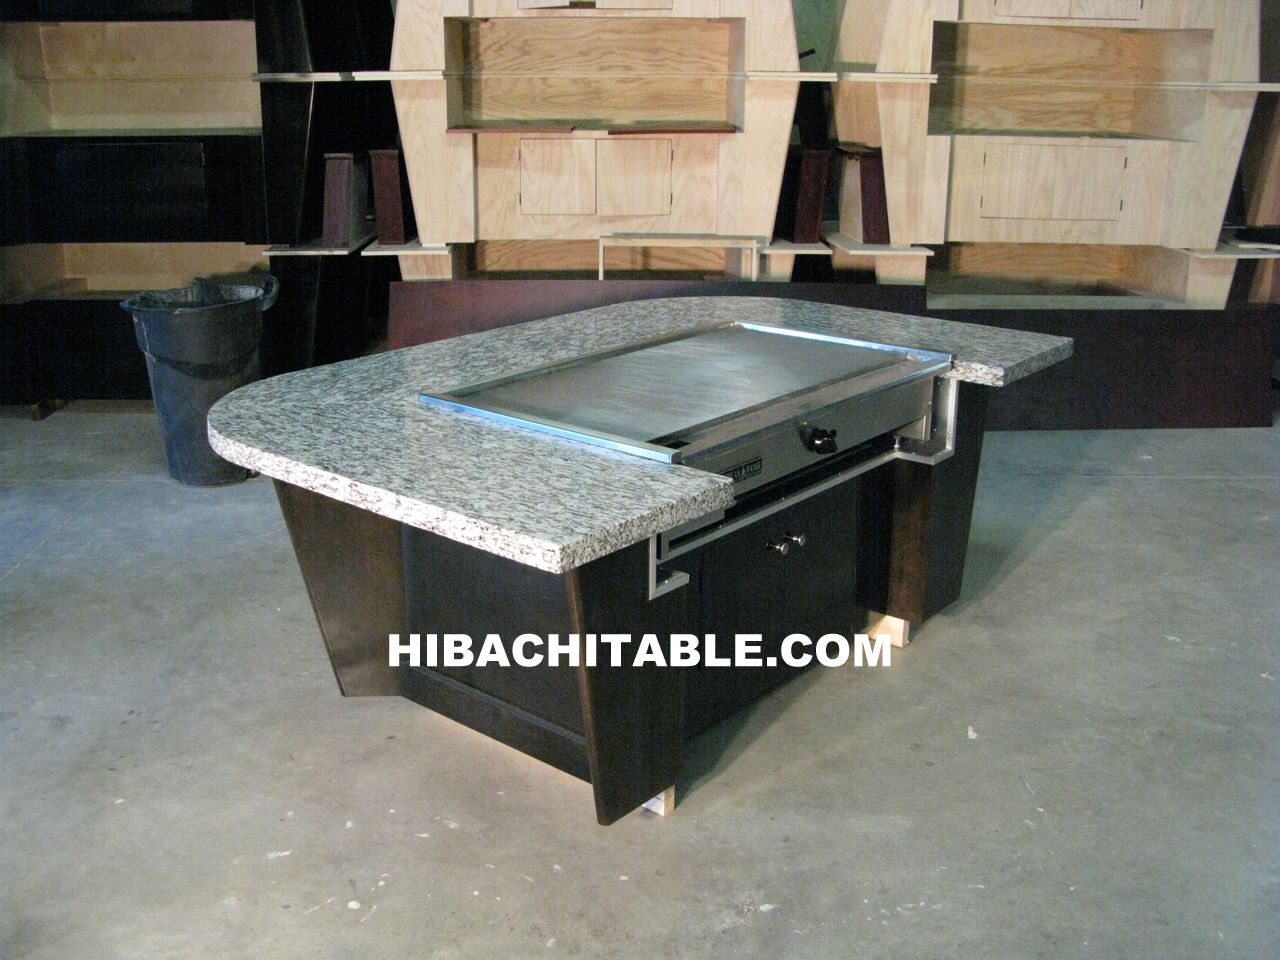 hibachi grills for the home gallery hibachi table. Black Bedroom Furniture Sets. Home Design Ideas